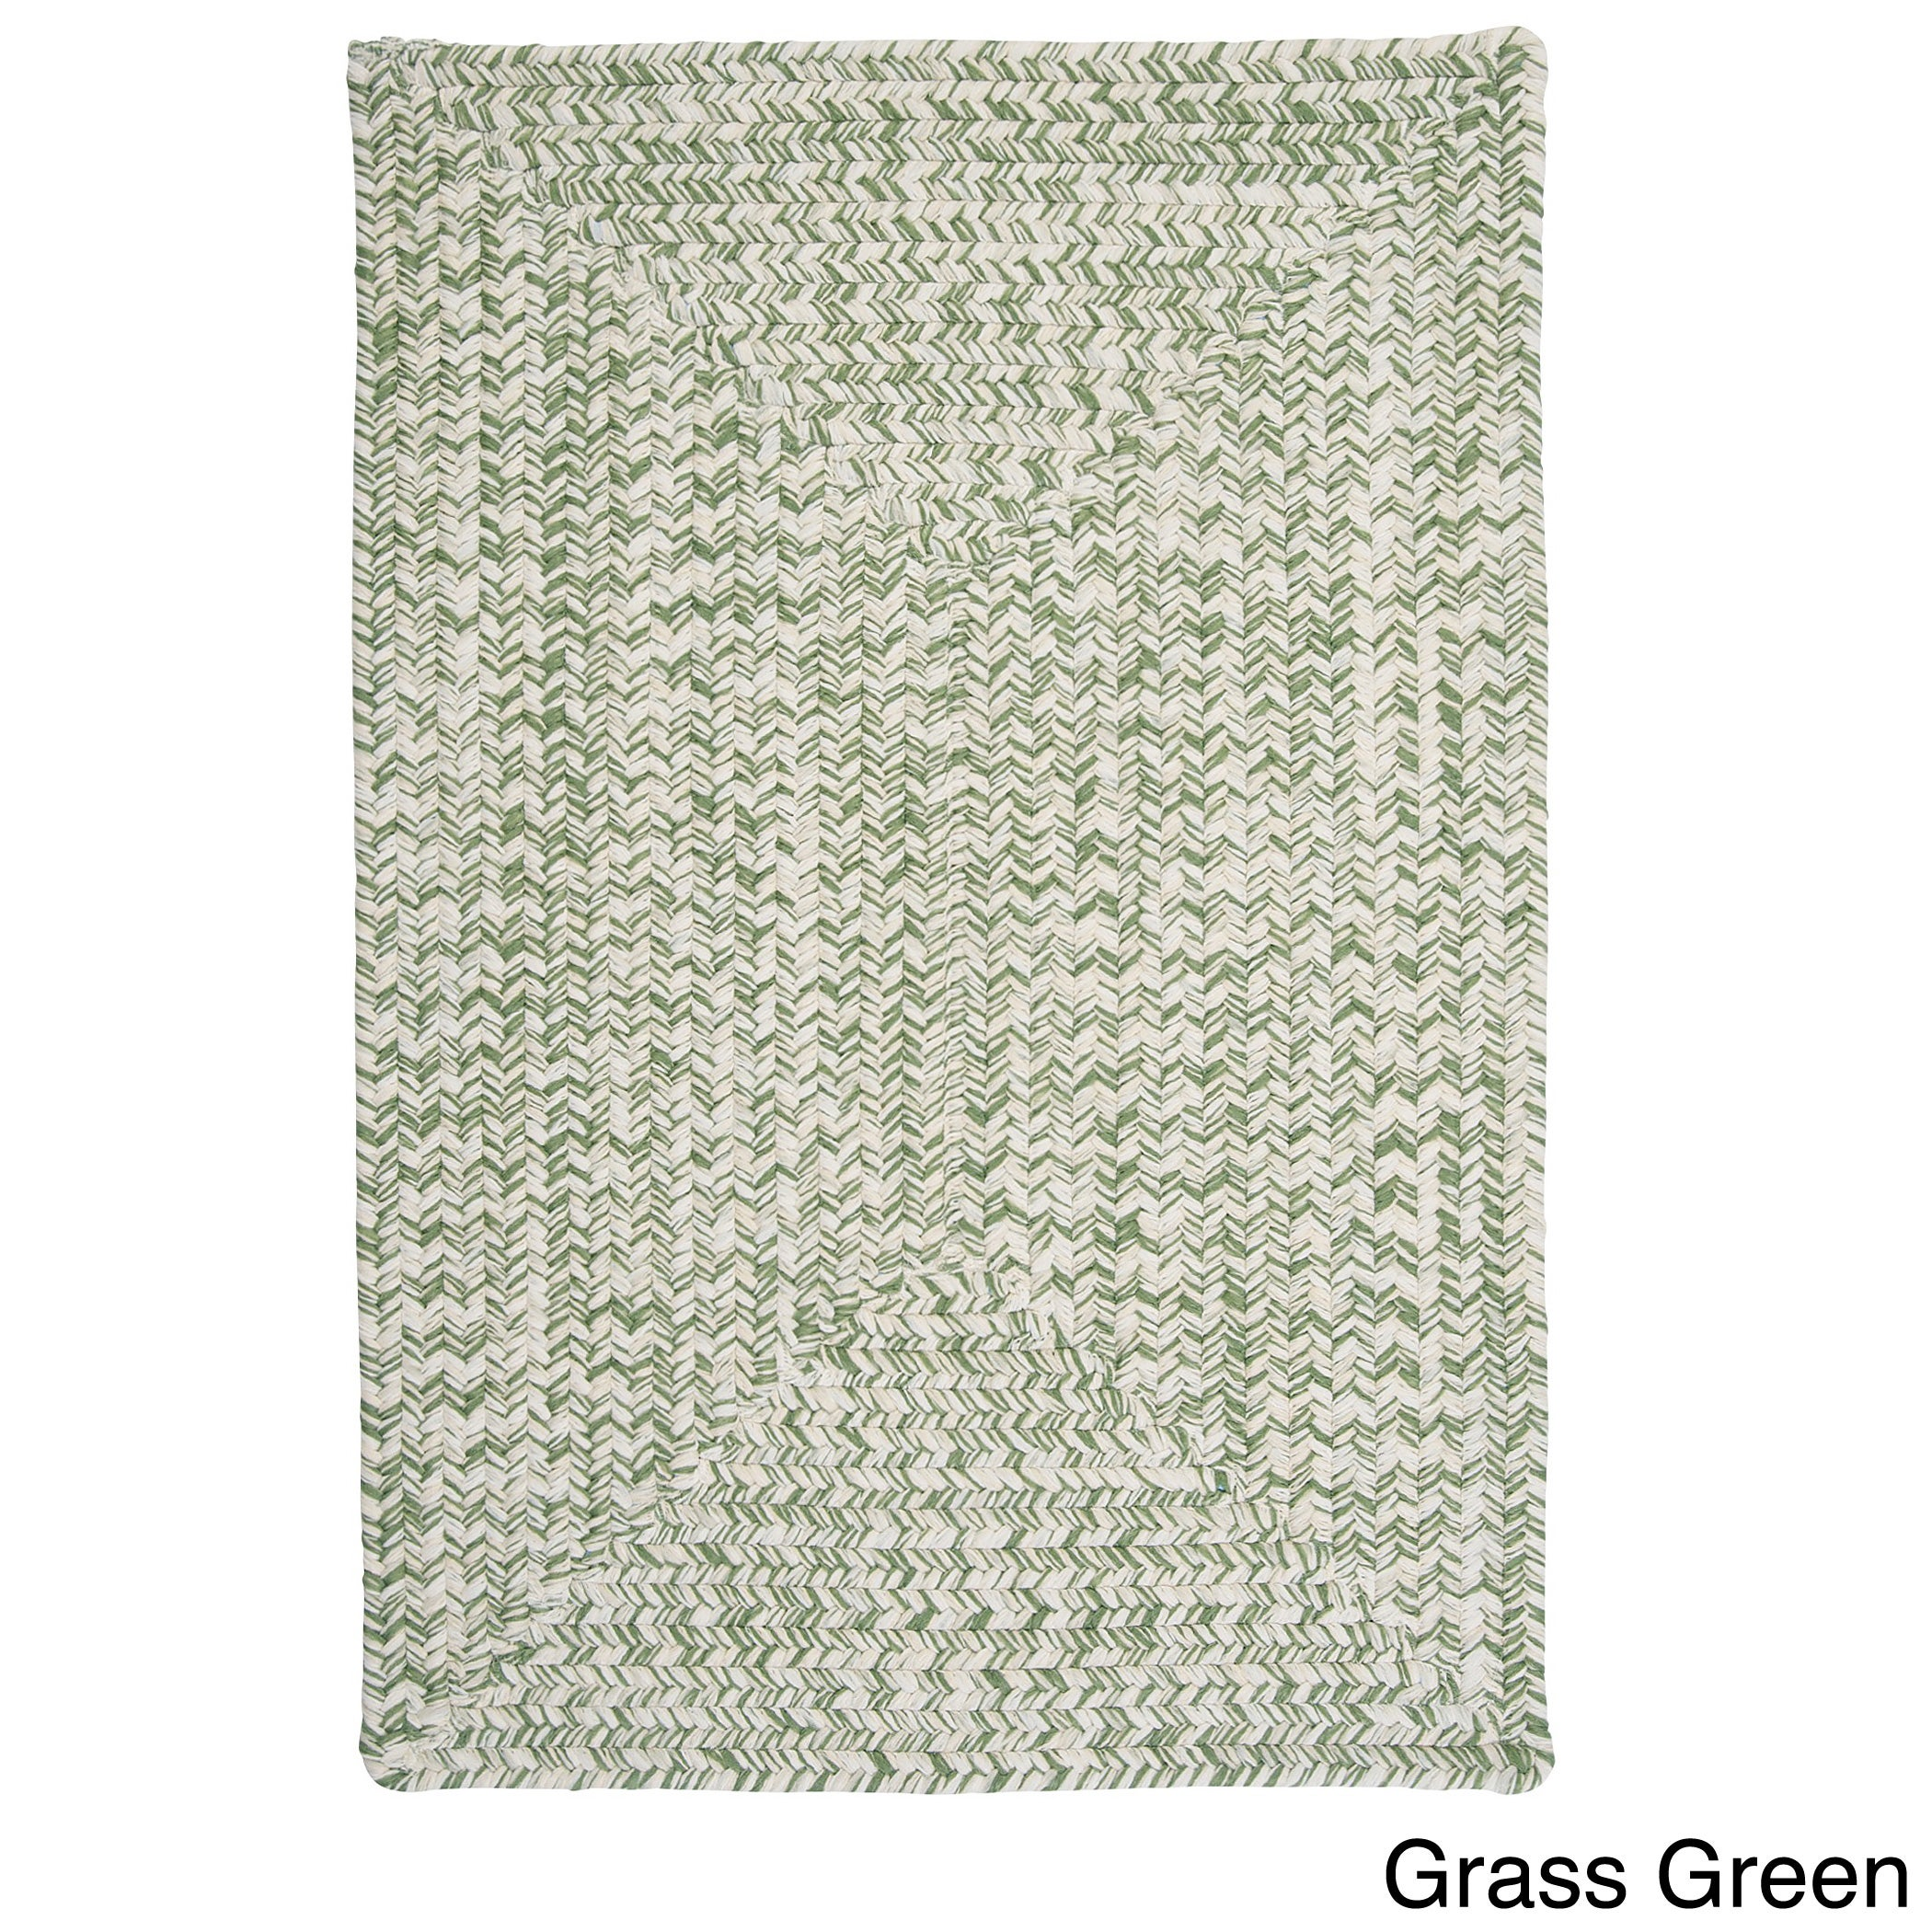 Colonial Mills Ocean's Edge Braided Outdoor Rug (2' x 3')...